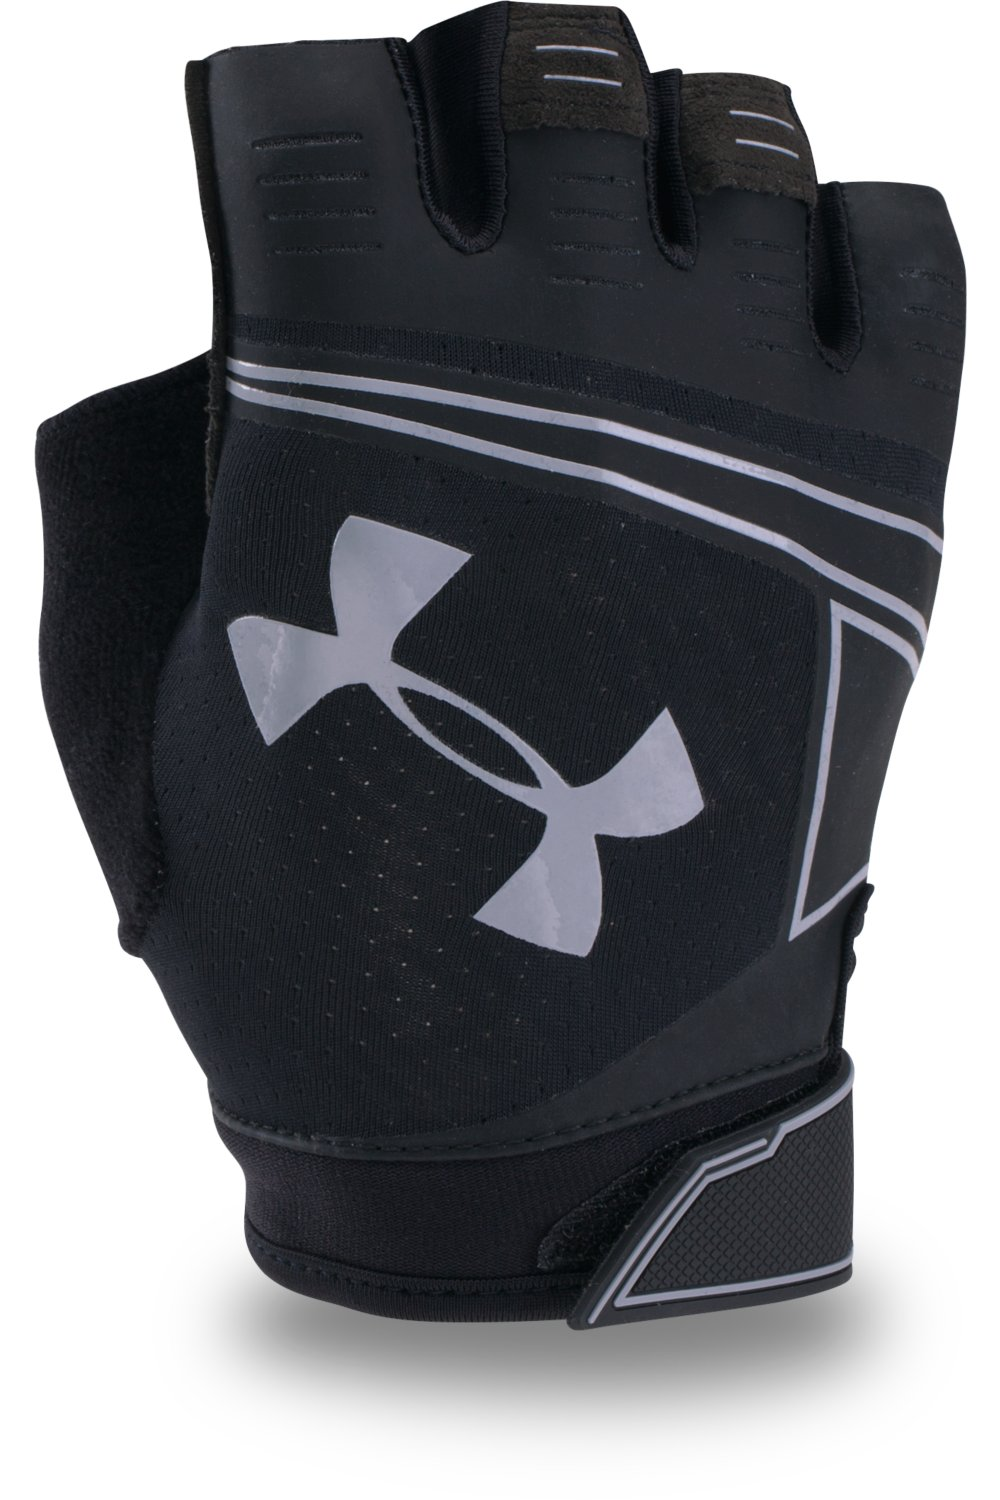 Under Armour черни мъжки ръкавици Coolswitch Flux